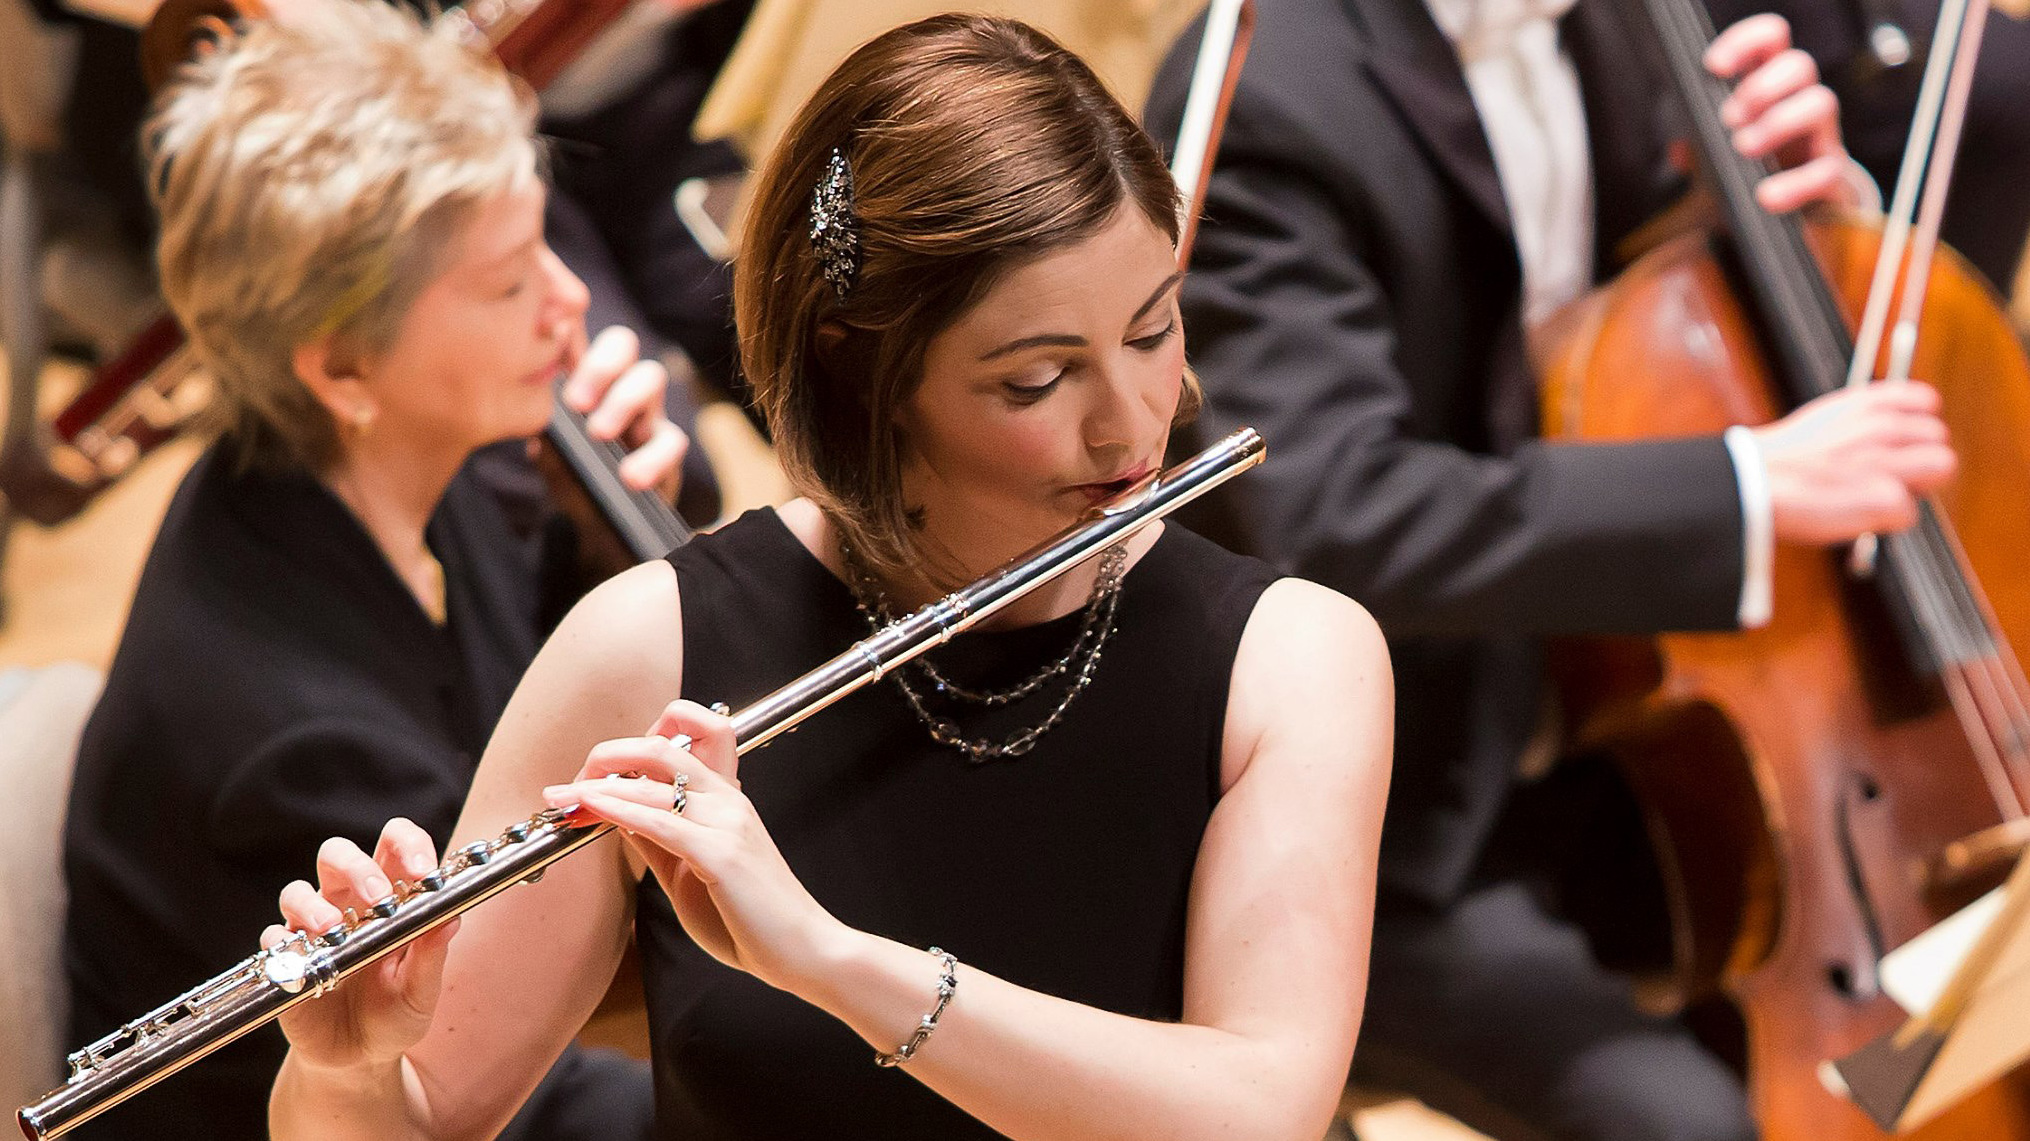 Top Flutist Settles Gender Pay-Gap Suit With Boston Symphony Orchestra